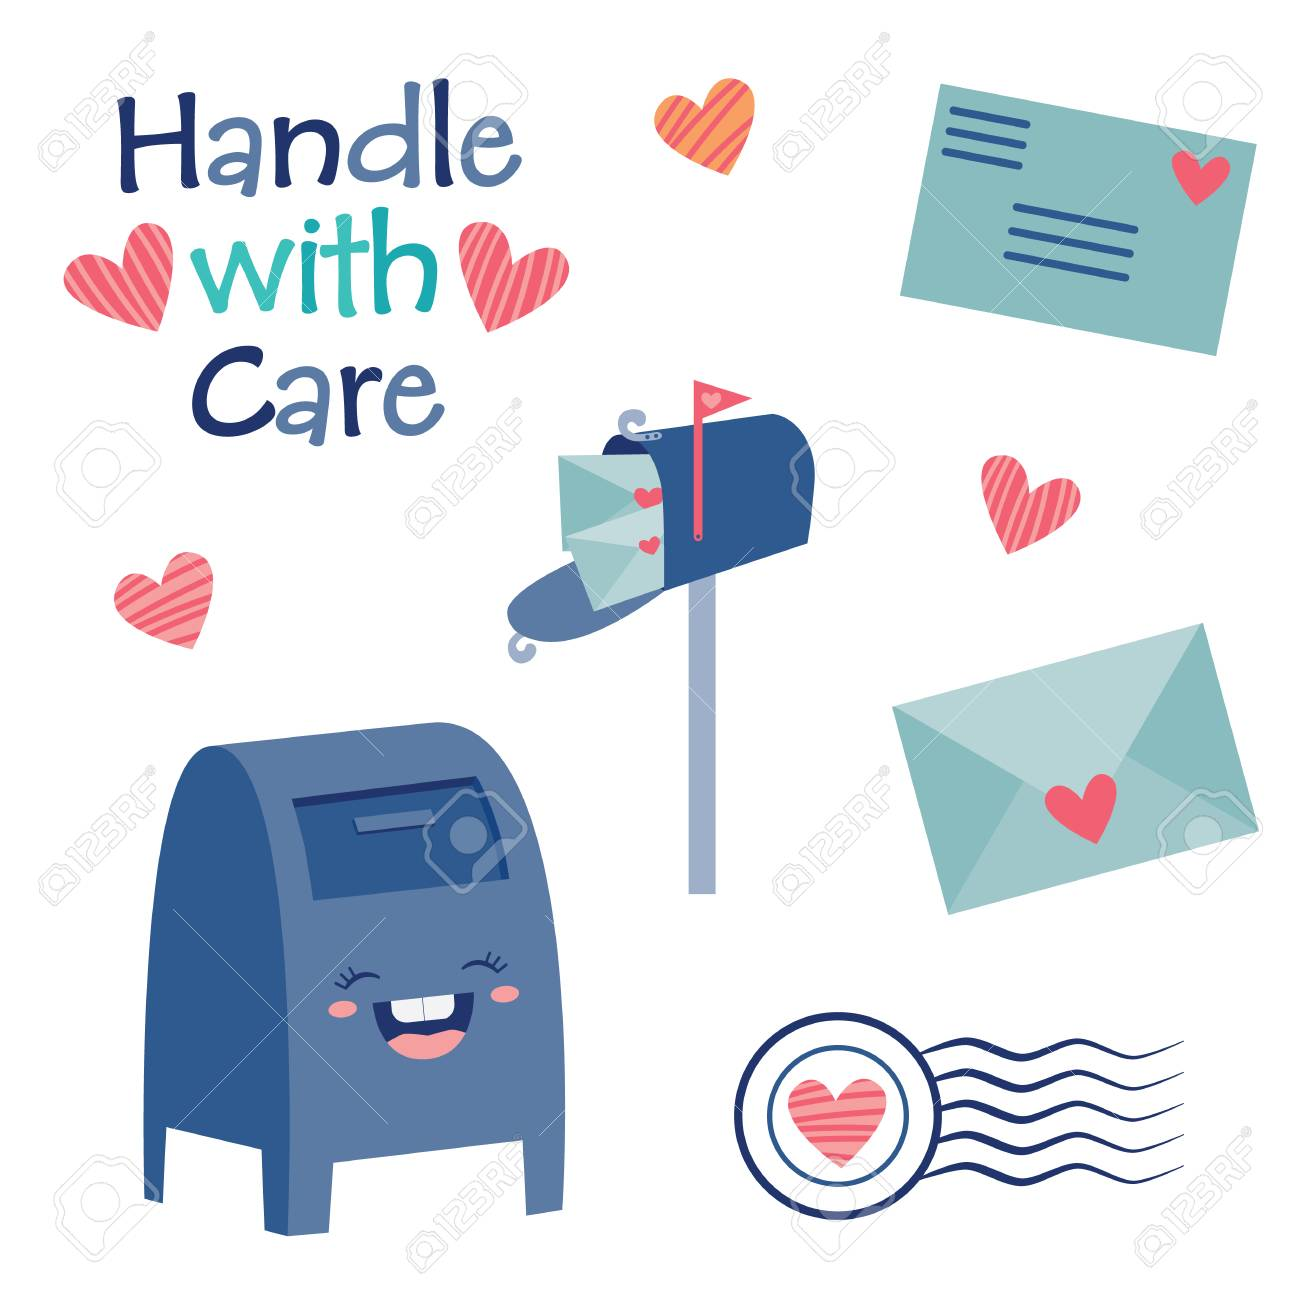 Handle With Care Penpals